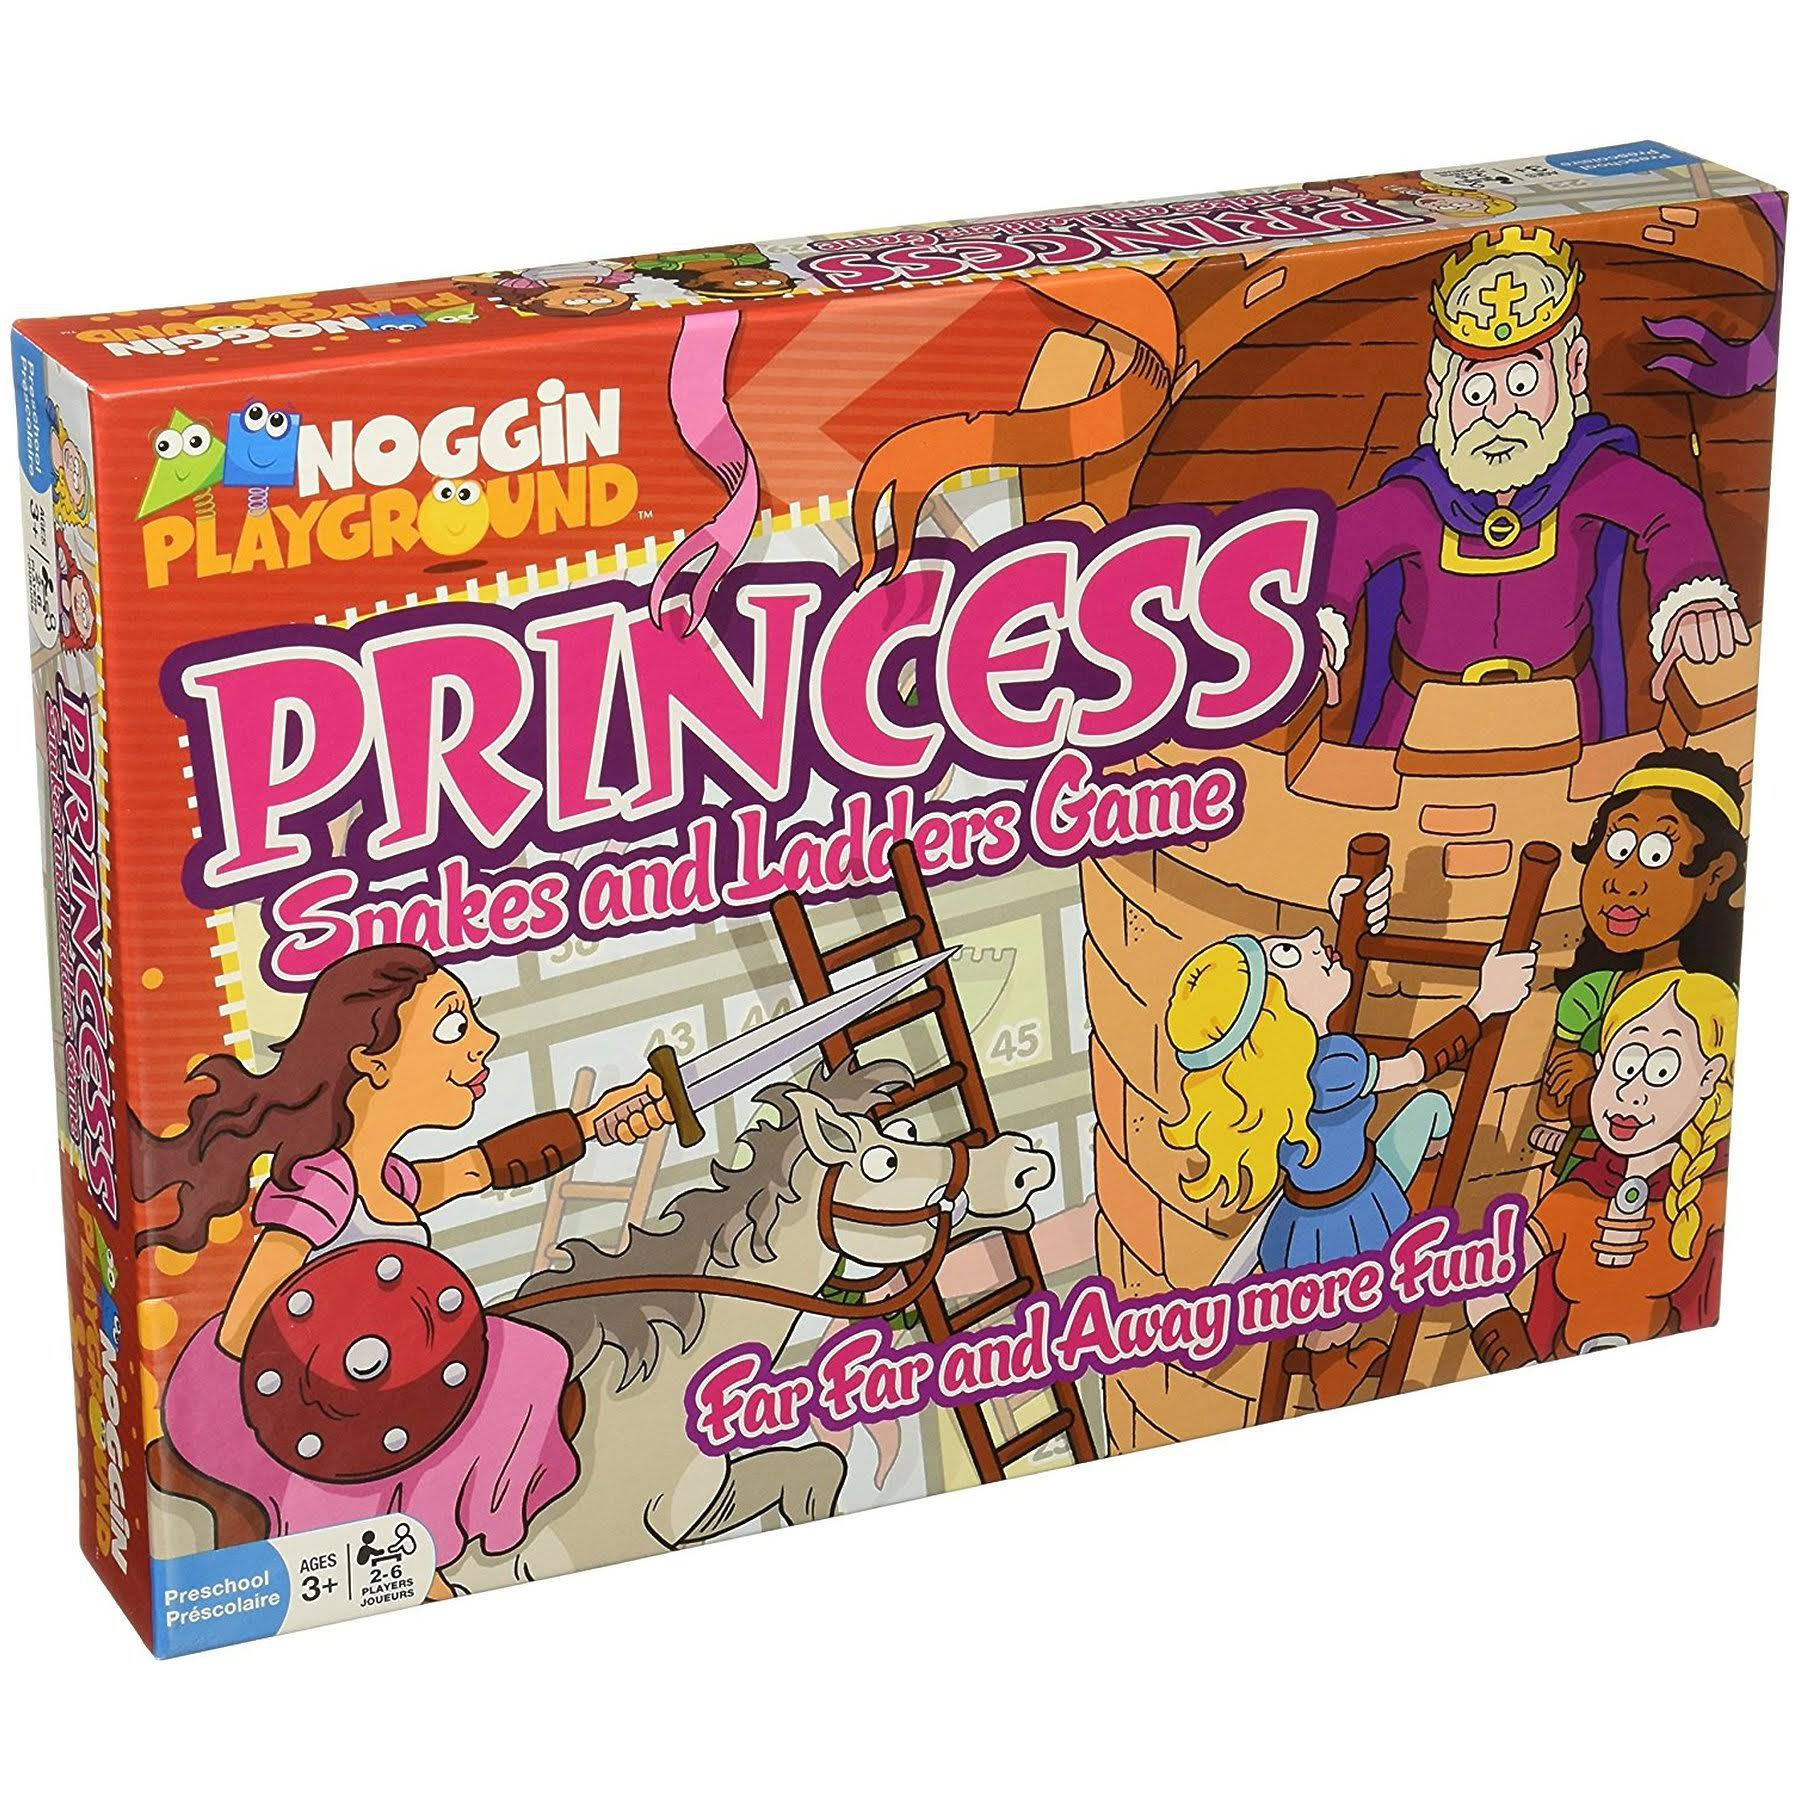 Noggin Playground Princess Snakes and Ladders Board Game